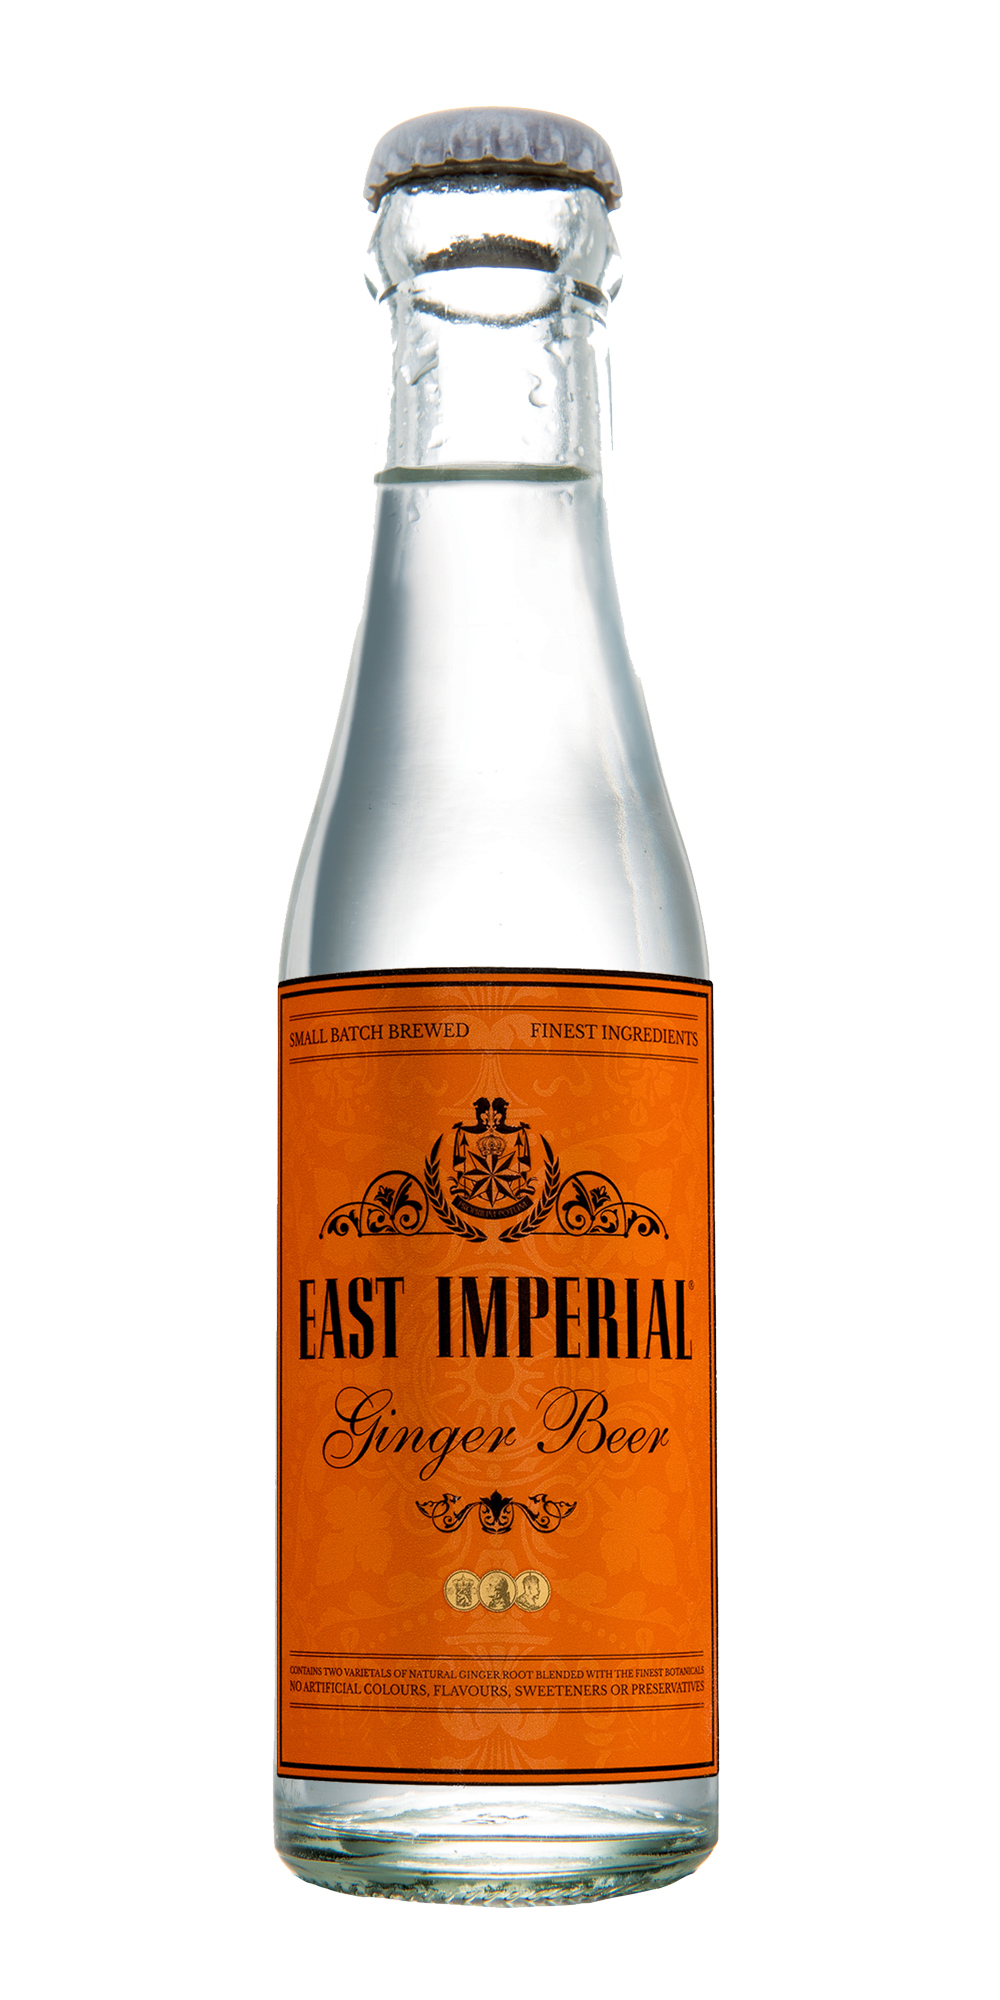 East Imperial Mombasa Ginger Beer